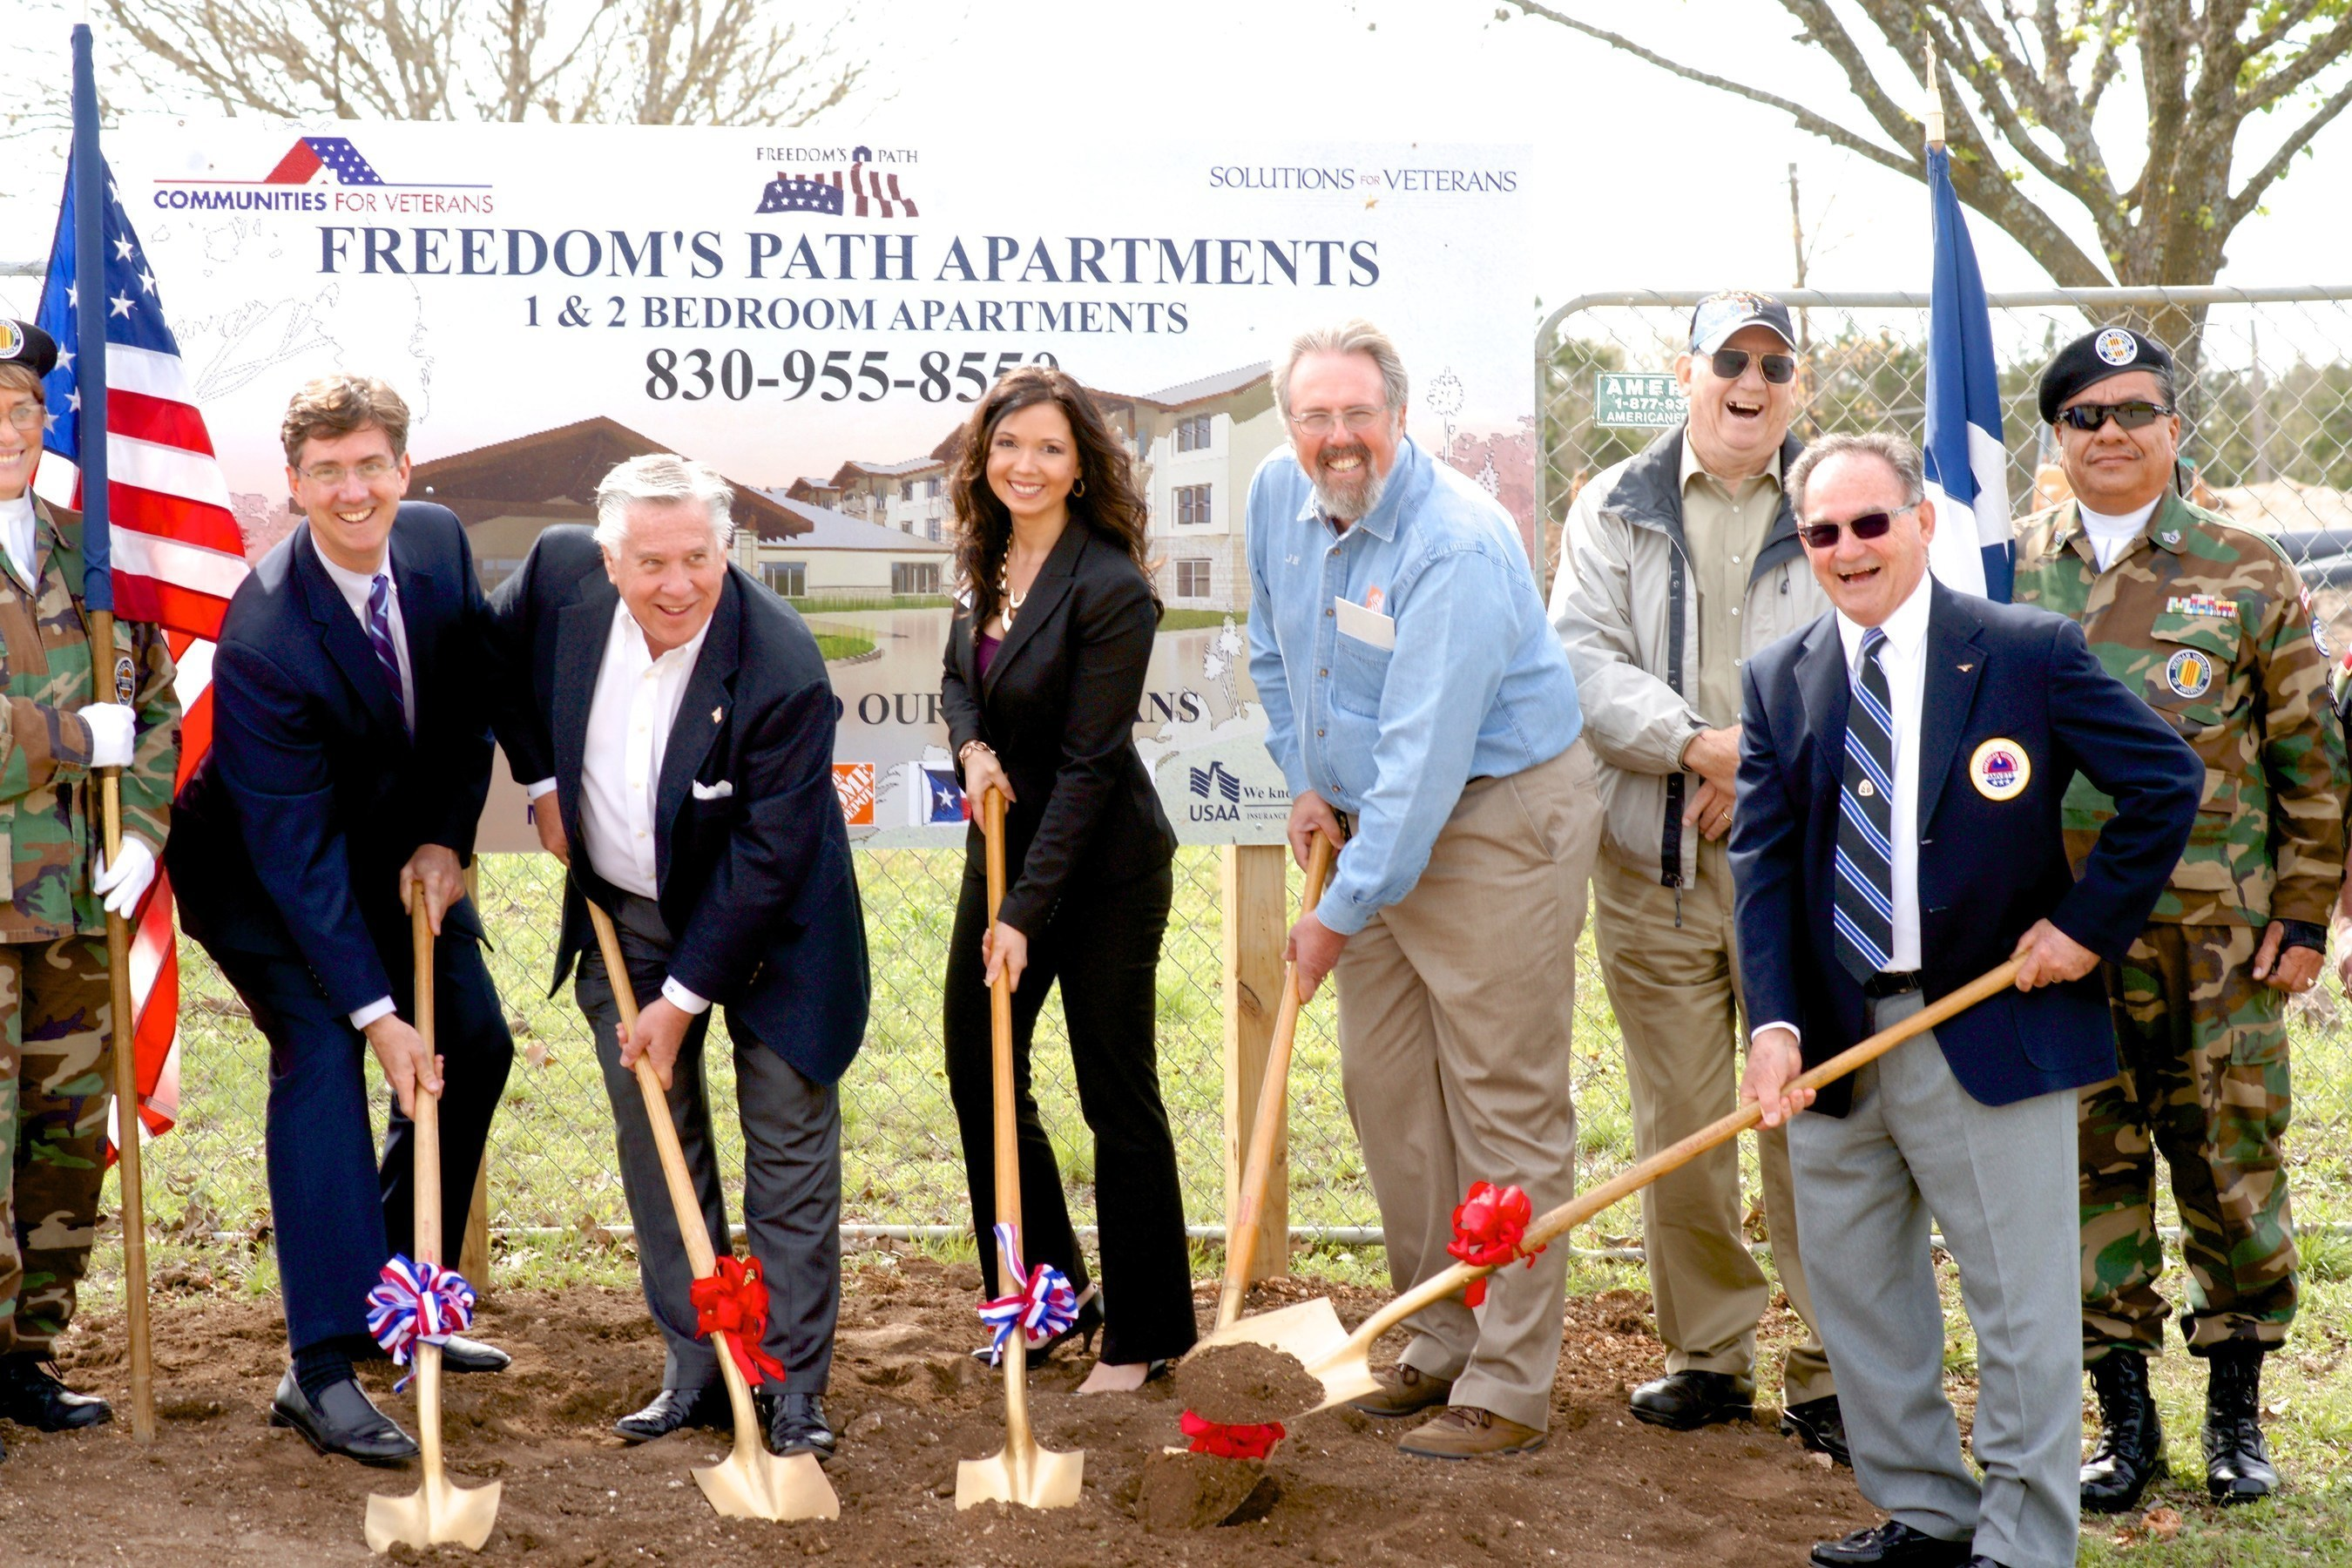 Construction Starts on Project for Disabled Veterans, Thanks to $500K Grant